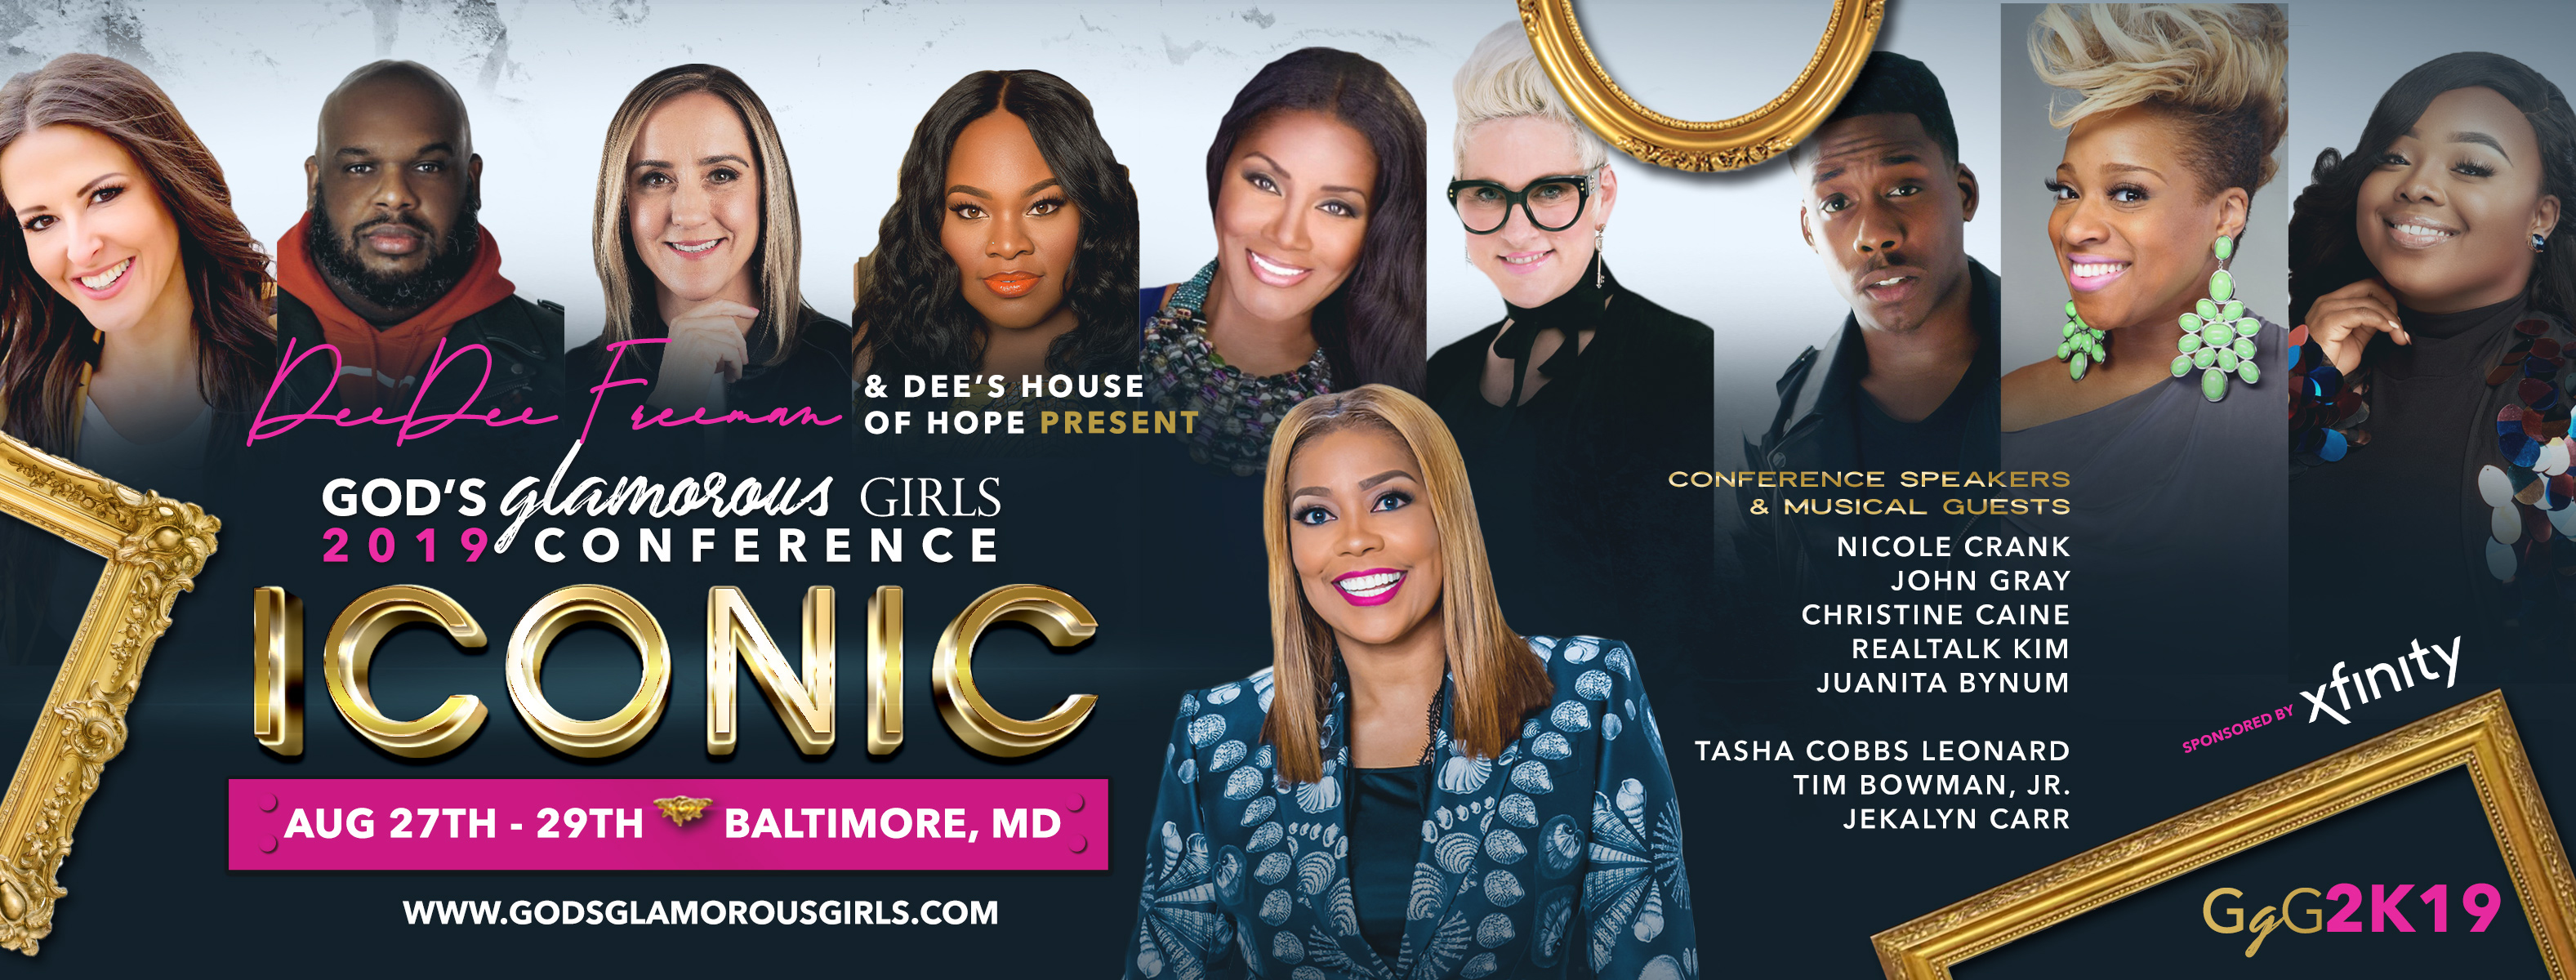 2019 God's Glamorous Girls Conference